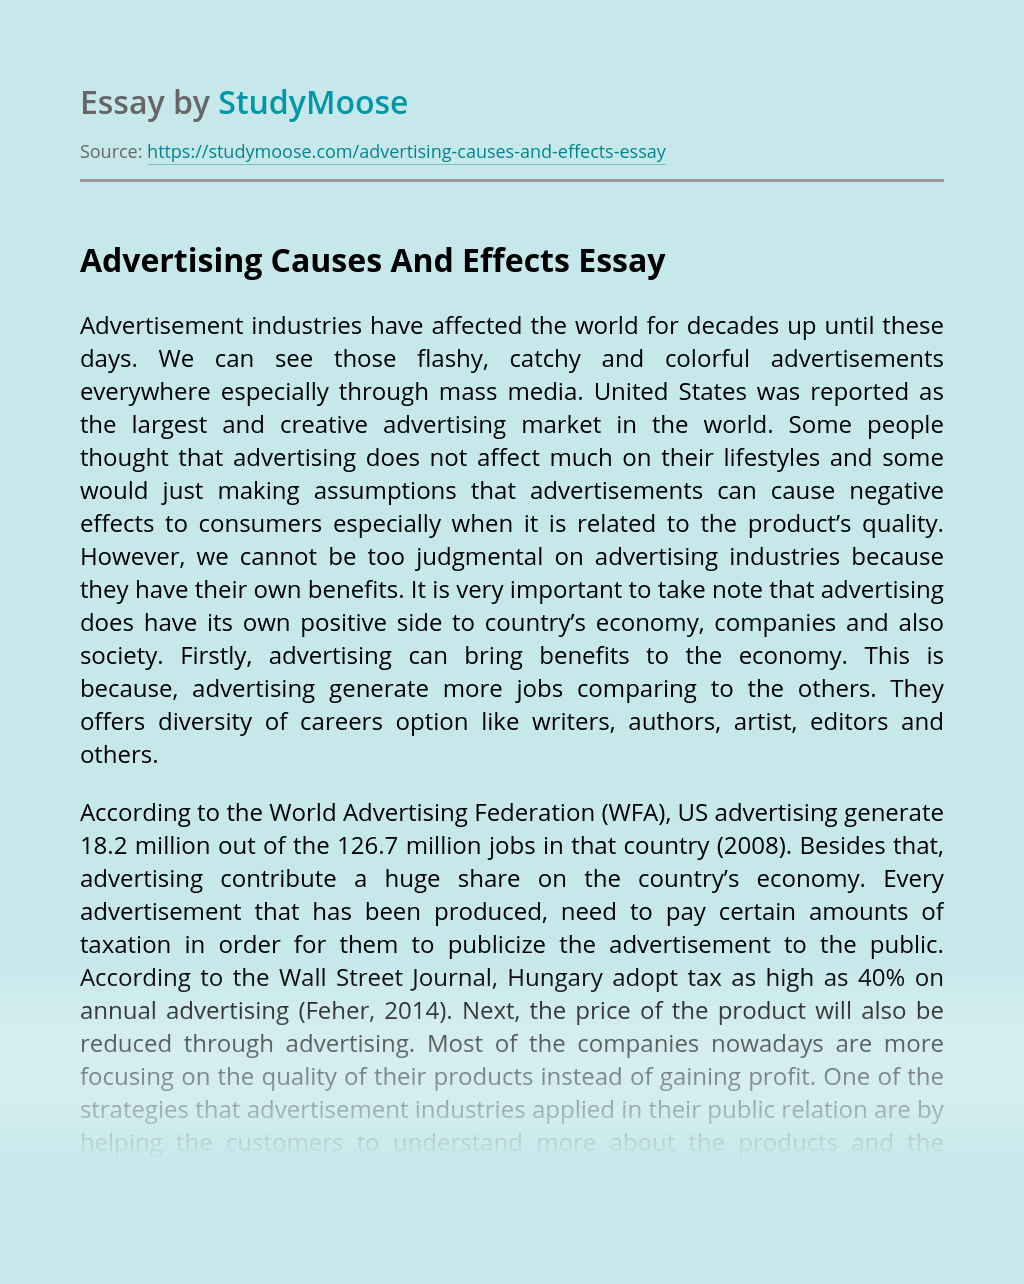 Advertising Causes And Effects